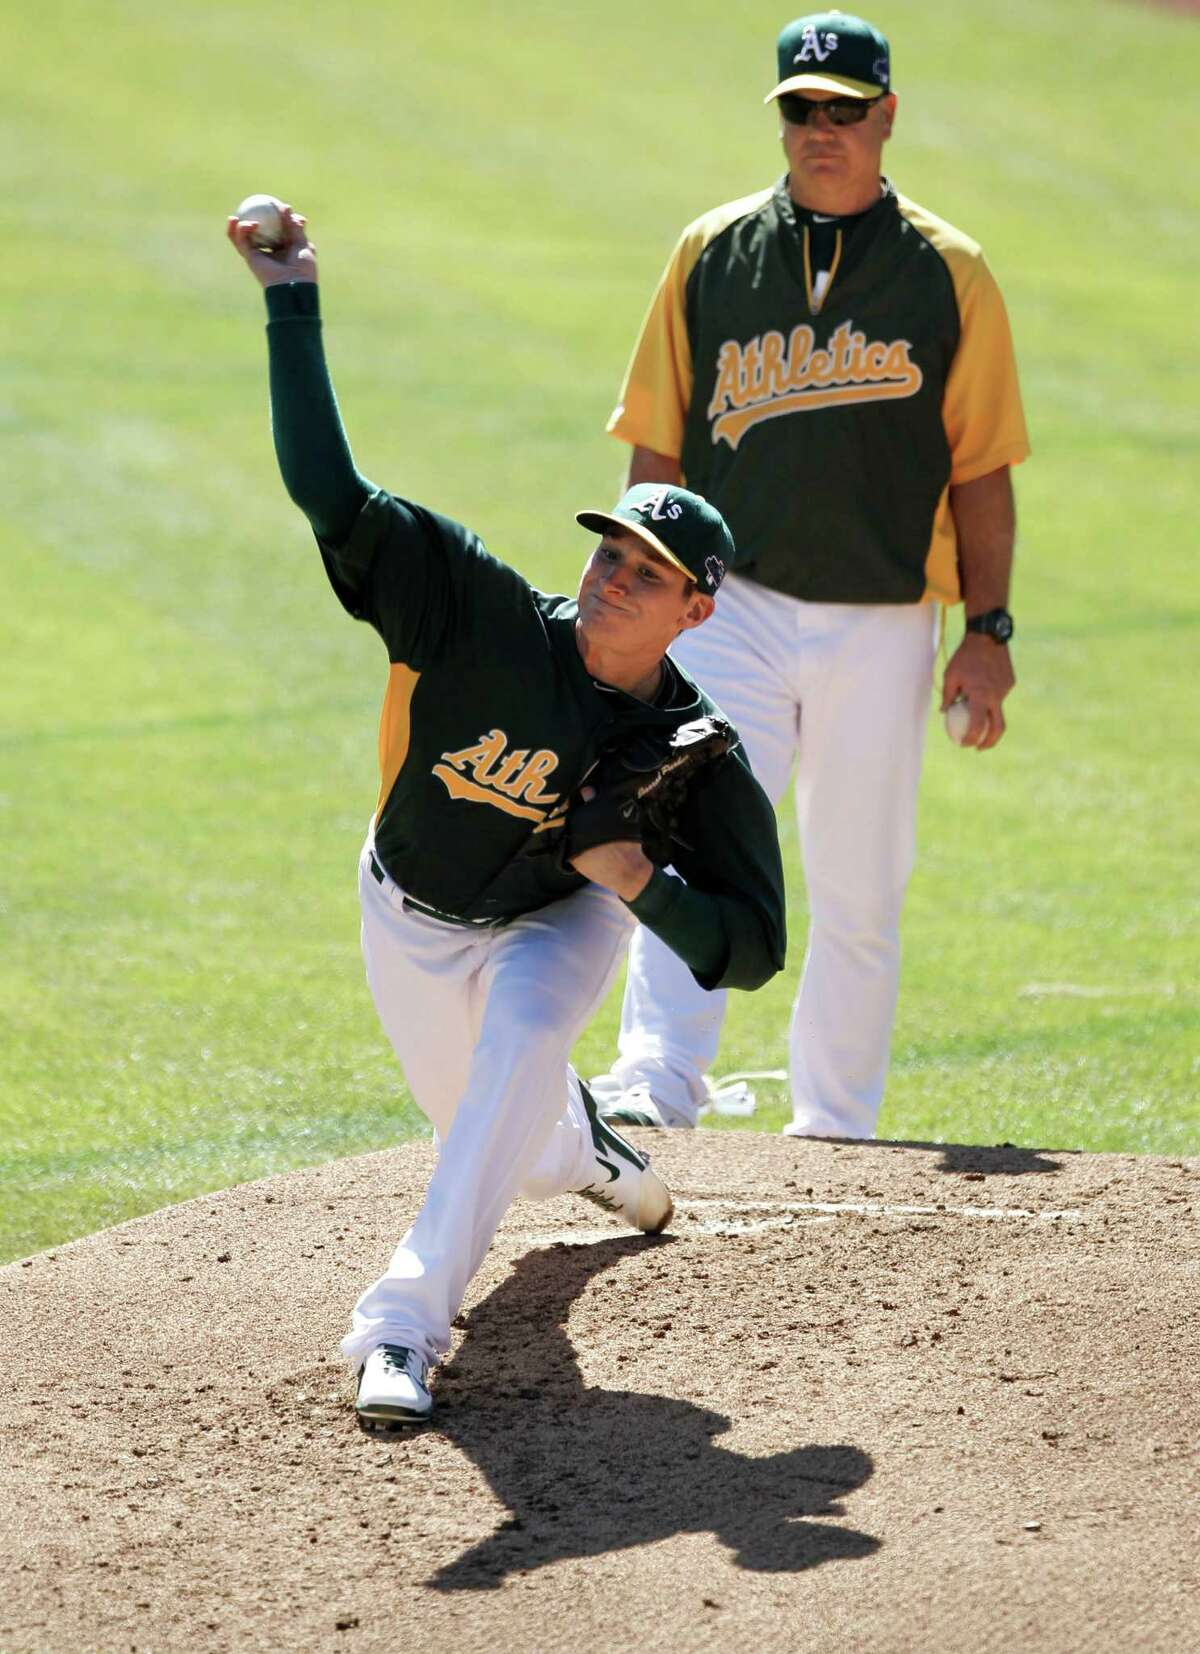 A's pitcher, Jarrod Parker, (11) throws under the watchful eye of pitching coach Curt Young, as the Oakland Athletics work out on Thursday Oct. 3, 2013, in Oakland, Calif. at O.co Coliseum. The Oakland Athletics and the Detroit Tigers prepare for tomorrow's opening game in the MLB American League Divisional Series.